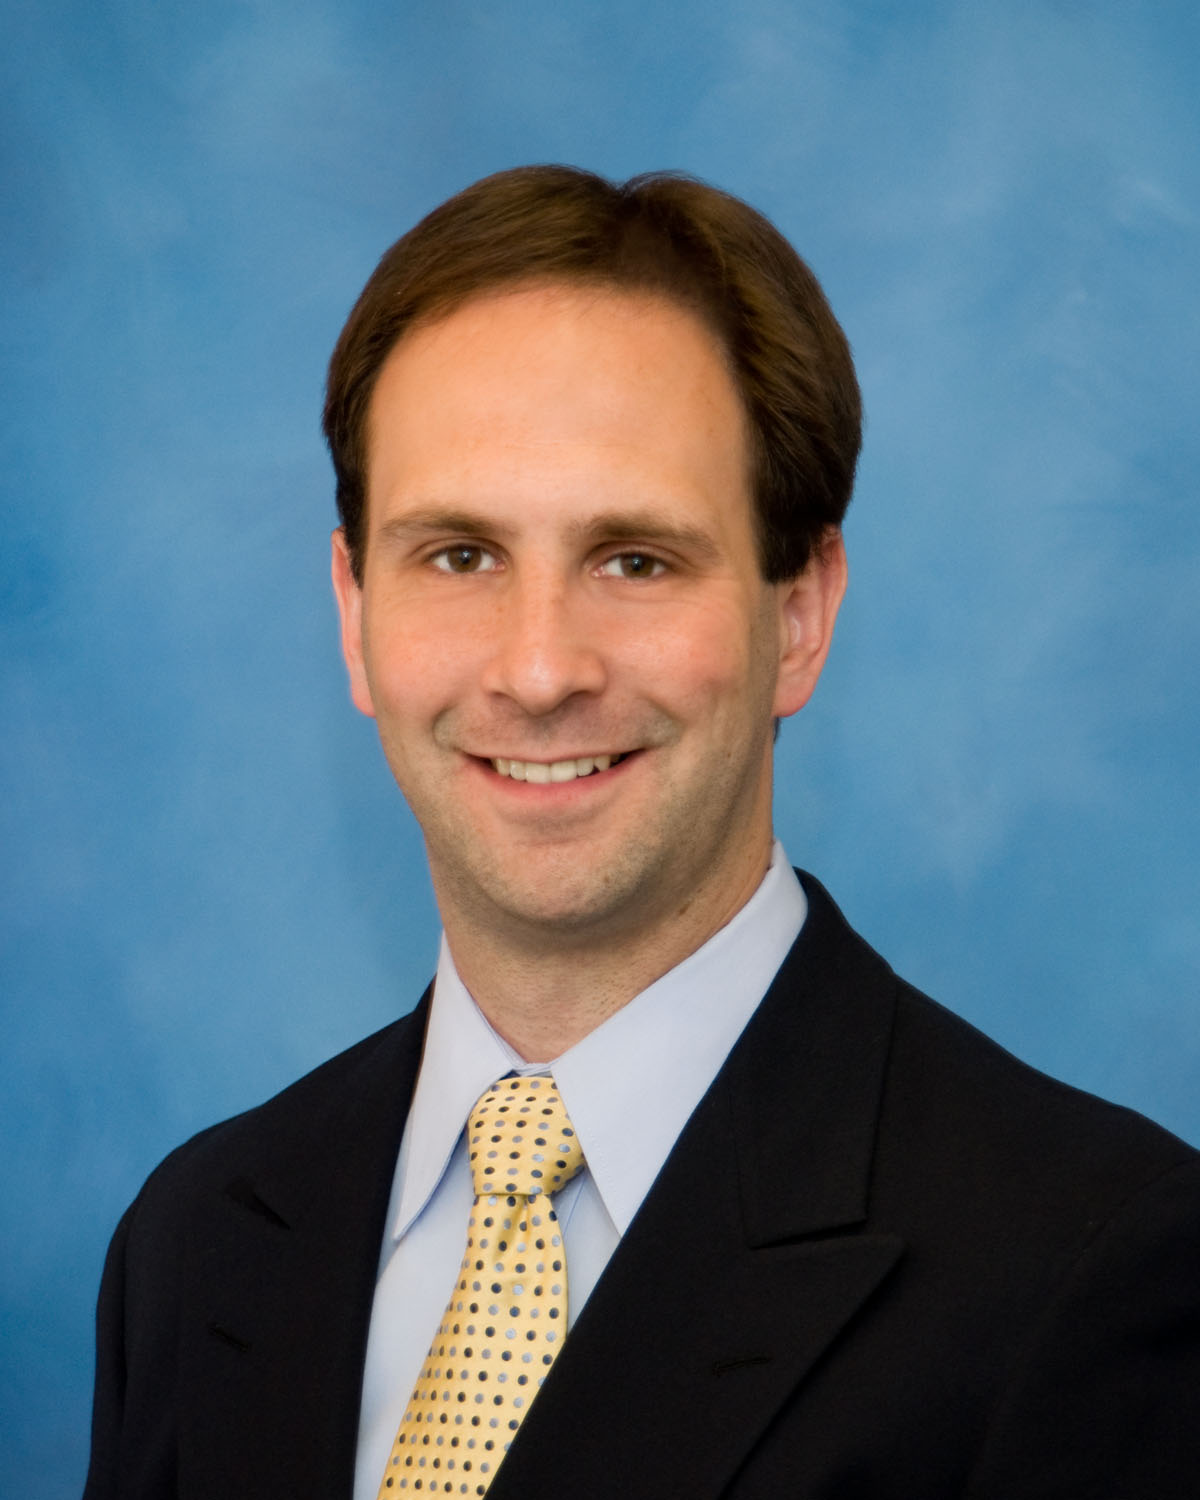 Jeffrey Kozlow, MD YPS Steering Committee